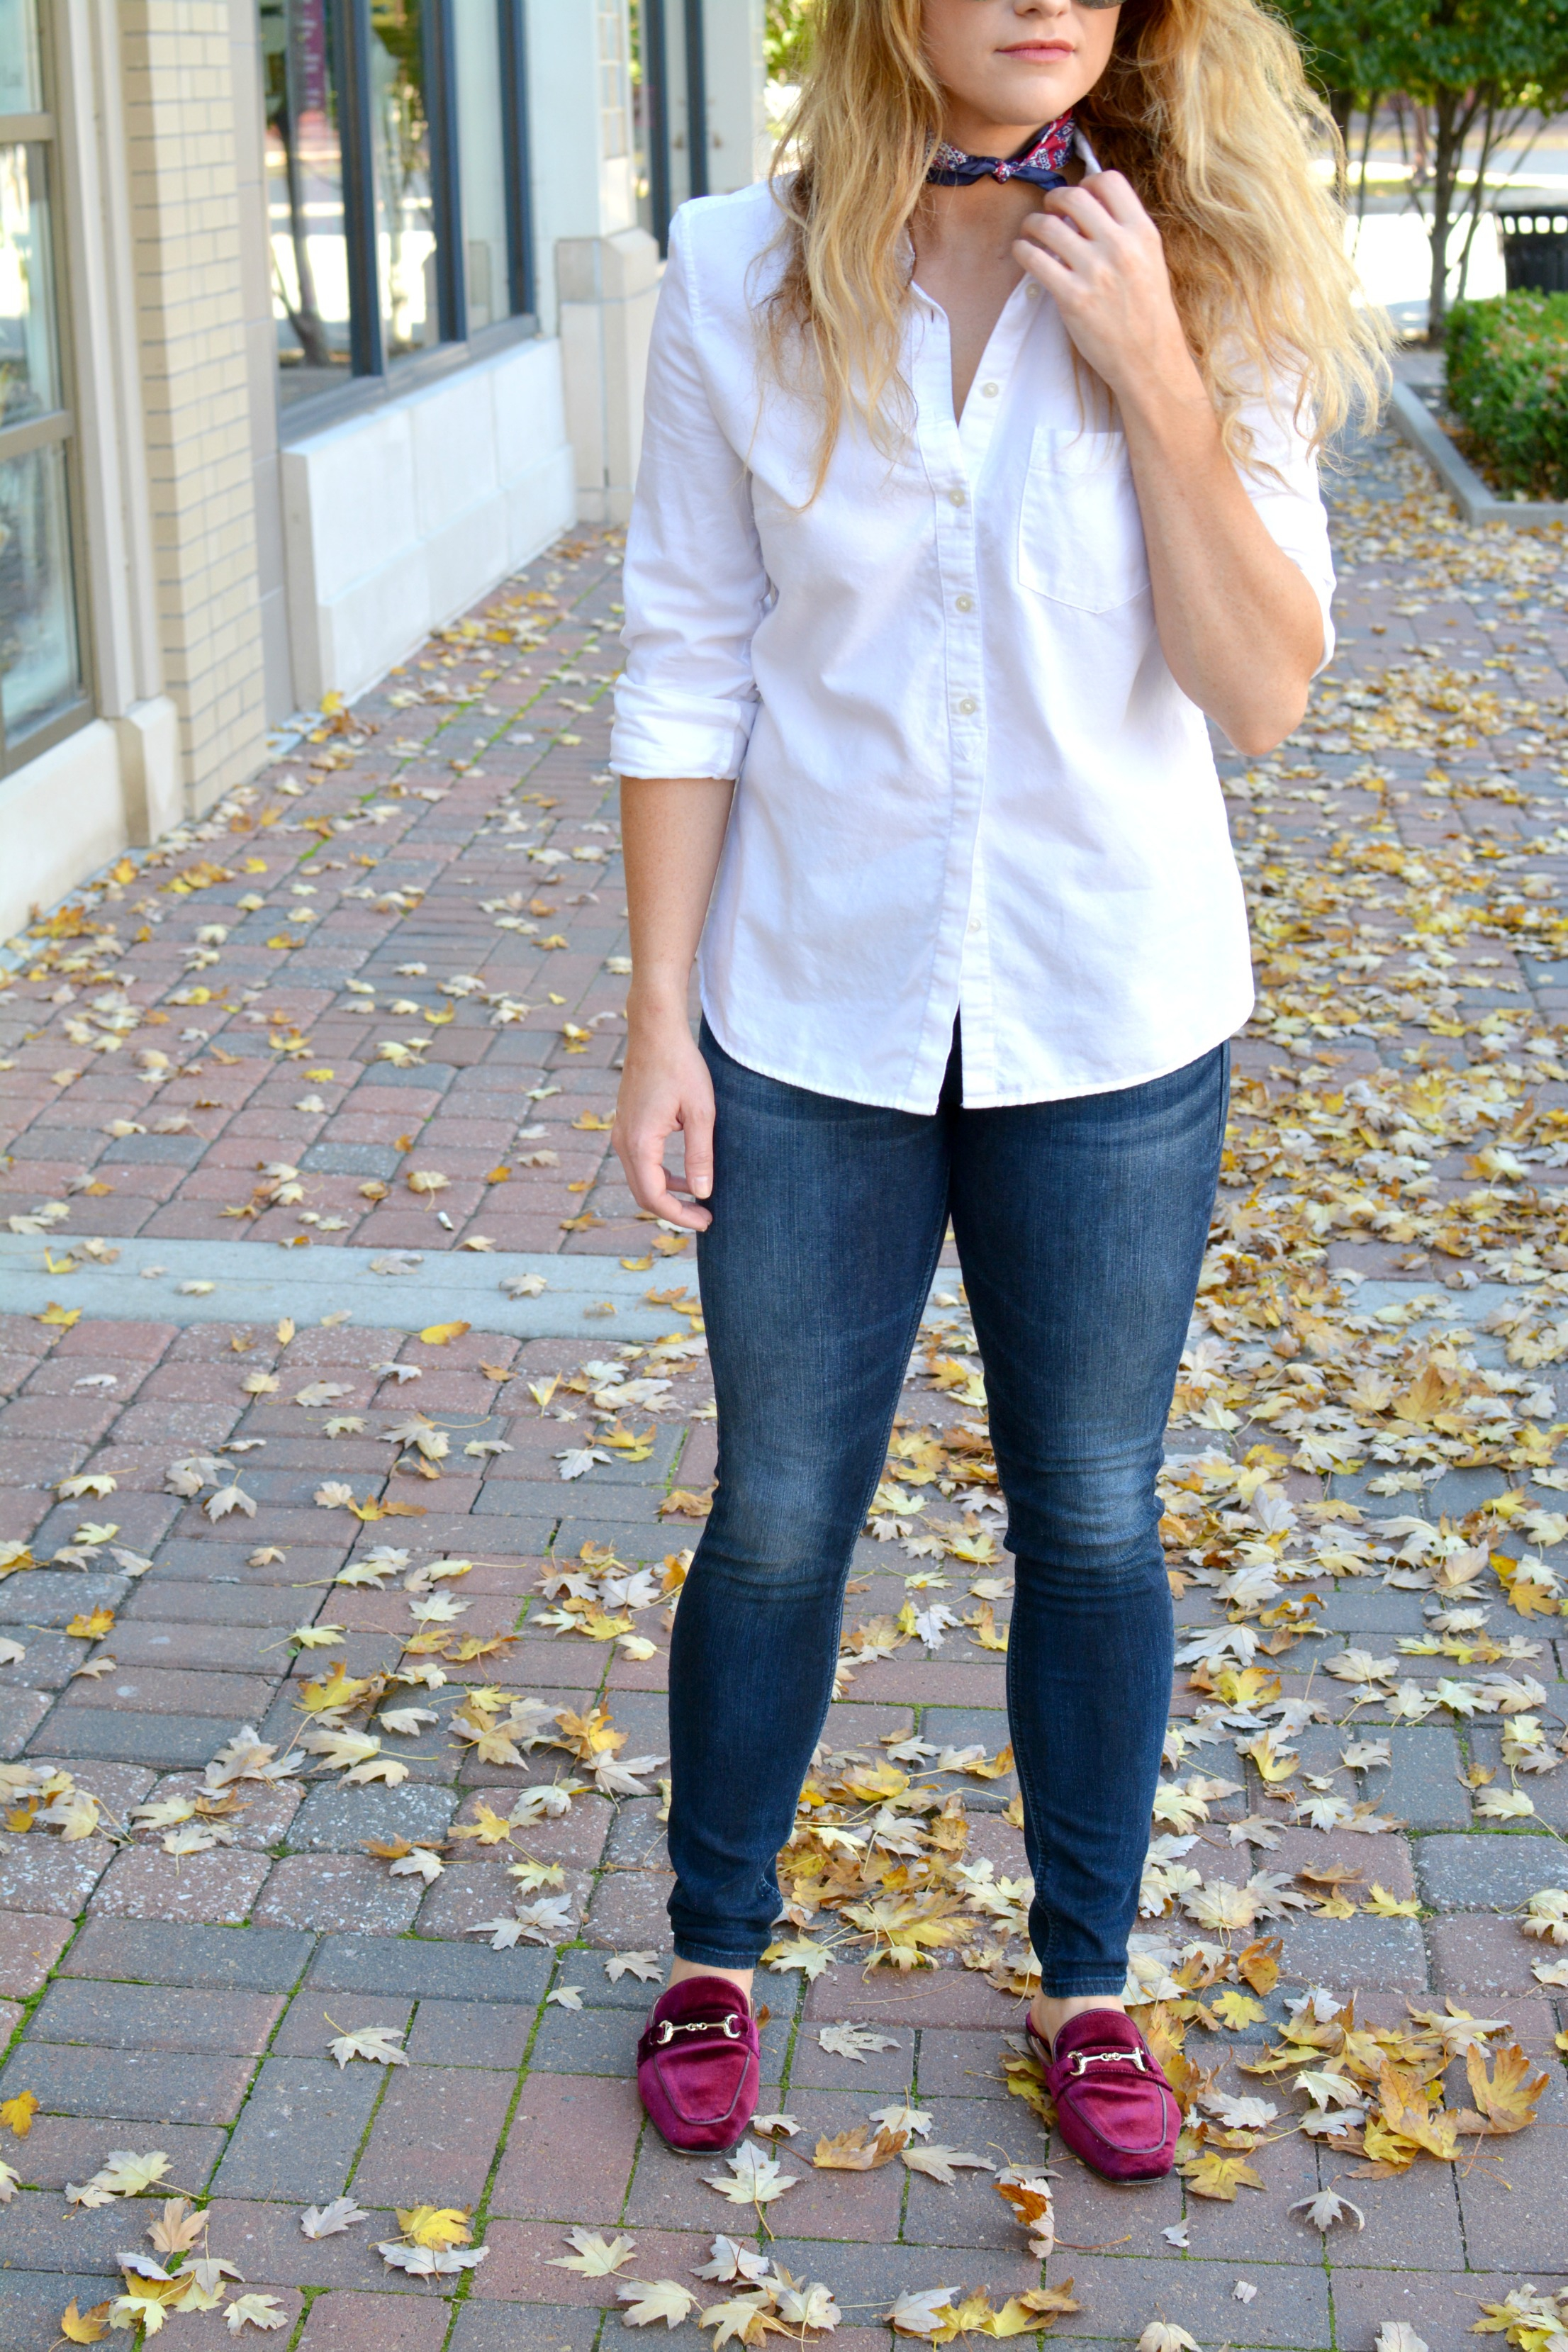 Ashley from LSR in a white boyfriend shirt, neck scarf, and burgundy velvet mules